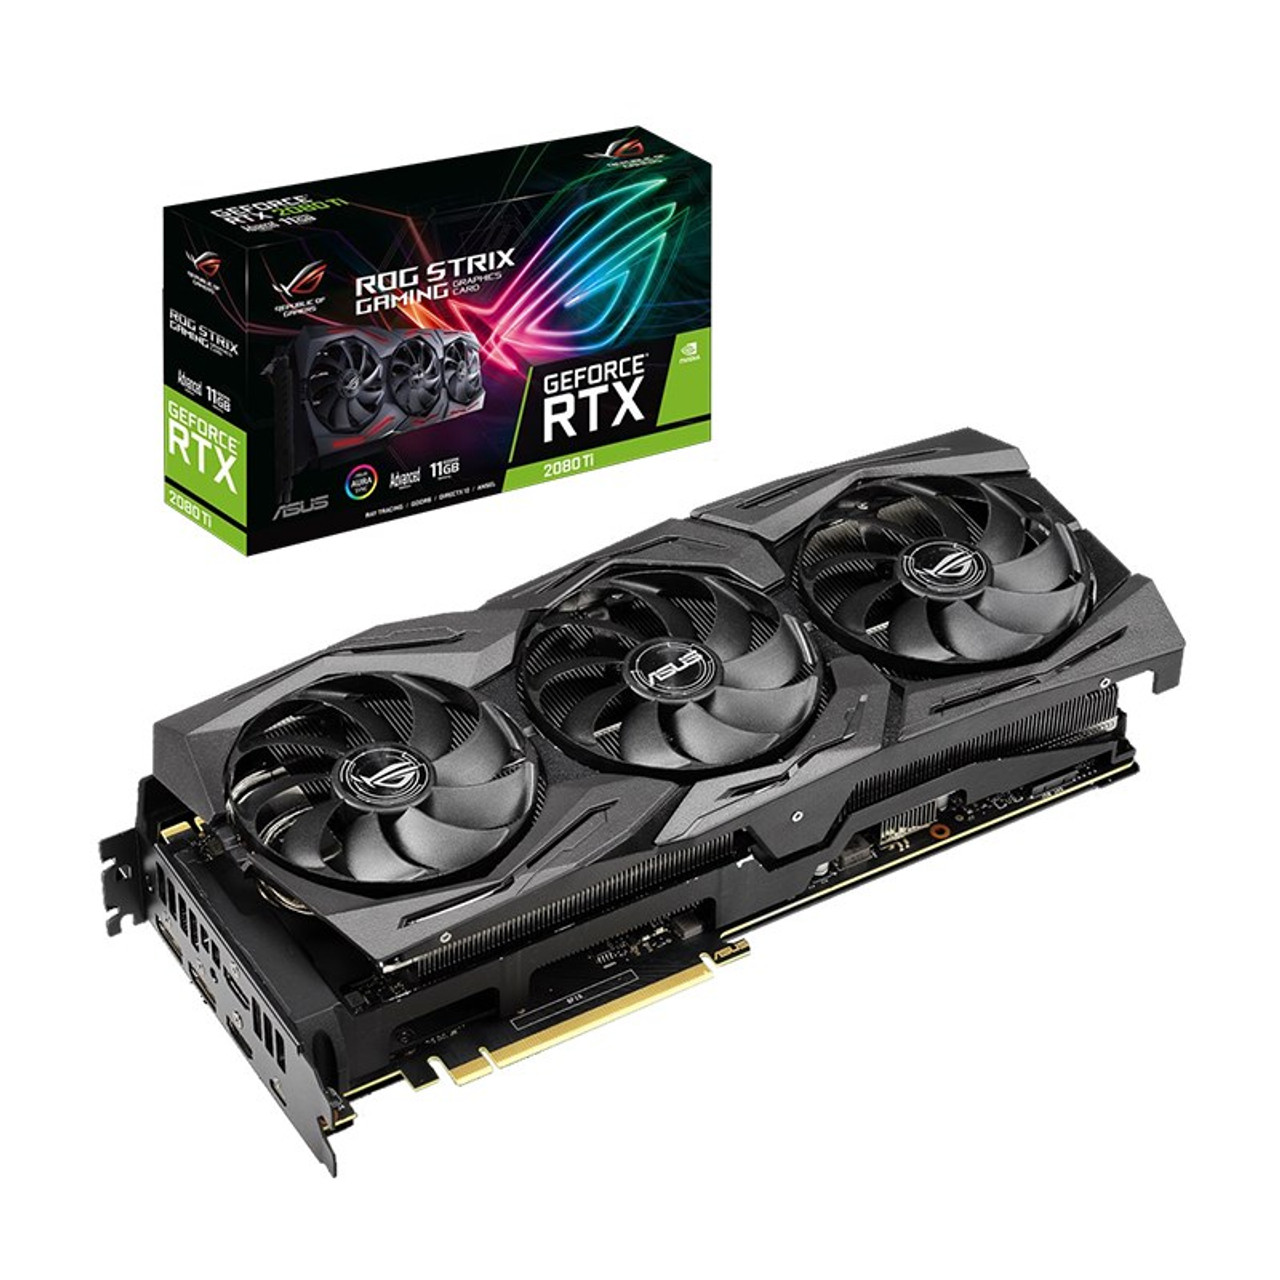 Image for Asus GeForce RTX 2080 Ti ROG Strix Advanced 11GB Video Card CX Computer Superstore